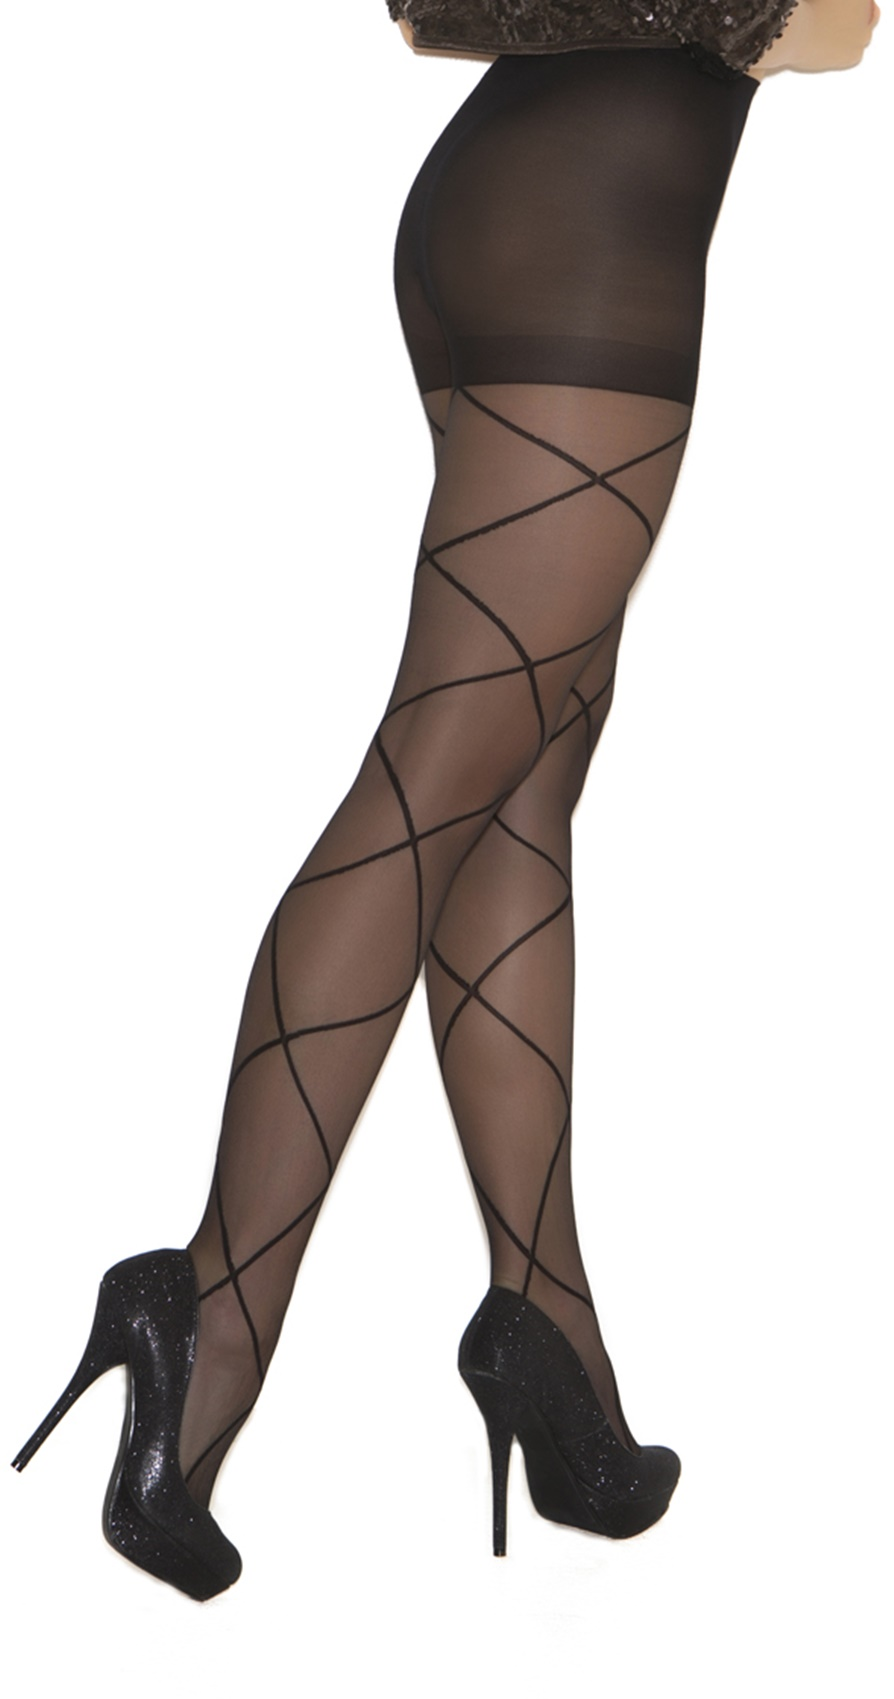 1841Q Queen Size Sheer Pantyhose With Criss Cross Detail